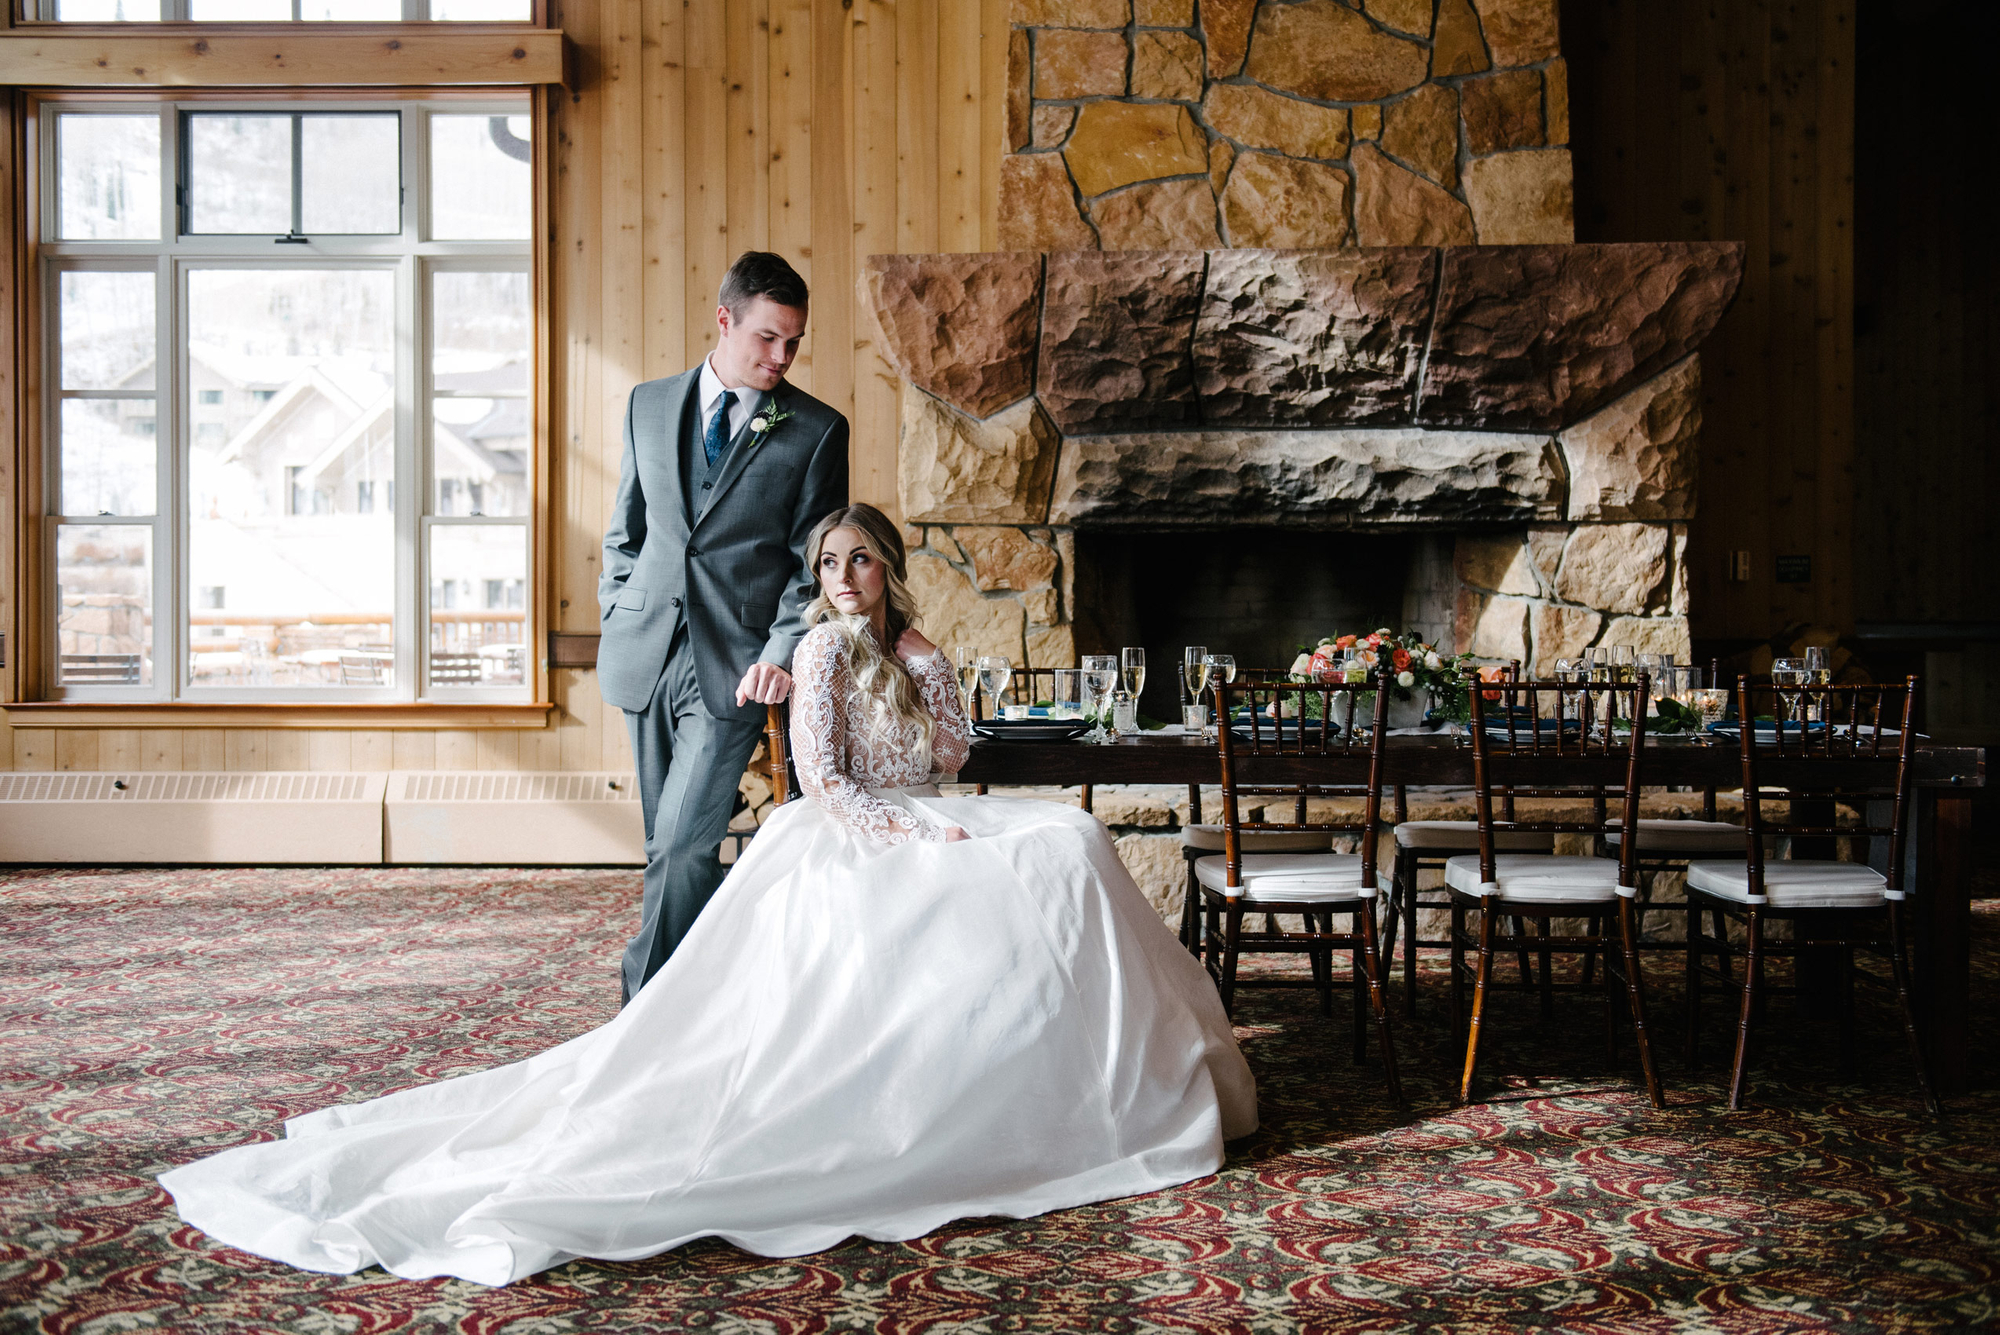 Rocky_Mountain_Bride_Winter_Elopement_Deer_Valley_Empire_Lodge_Bride_Groom_Seated_Table.jpg